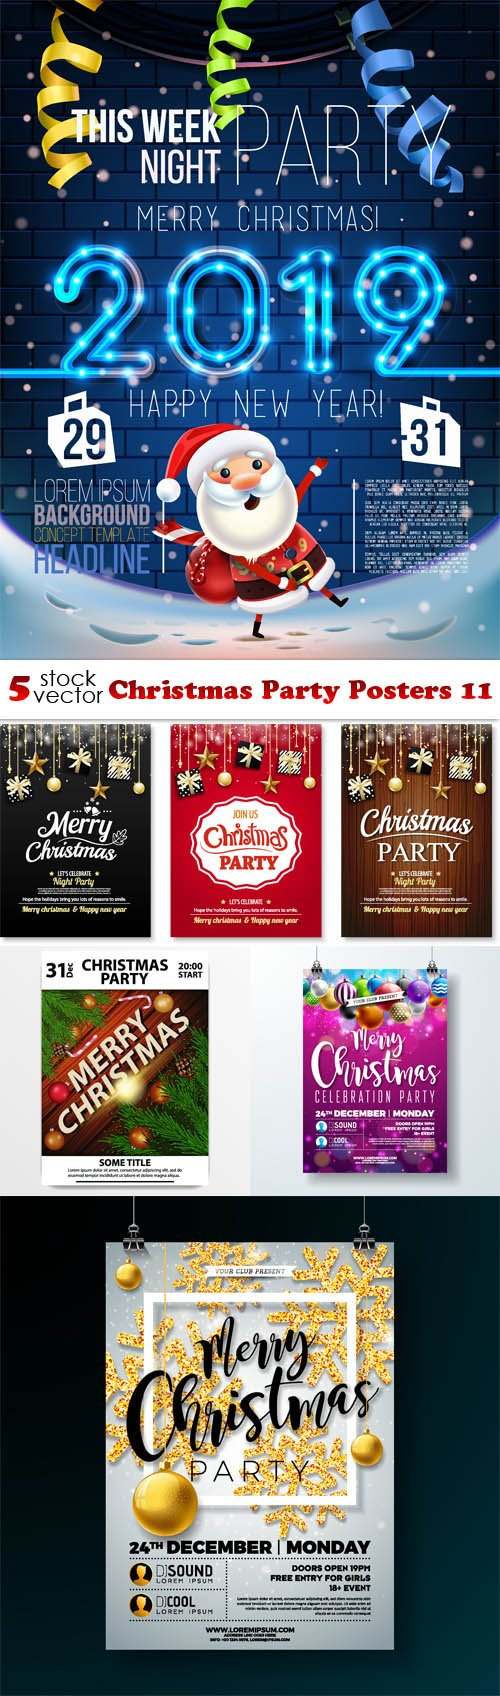 Vectors - Christmas Party Posters 11